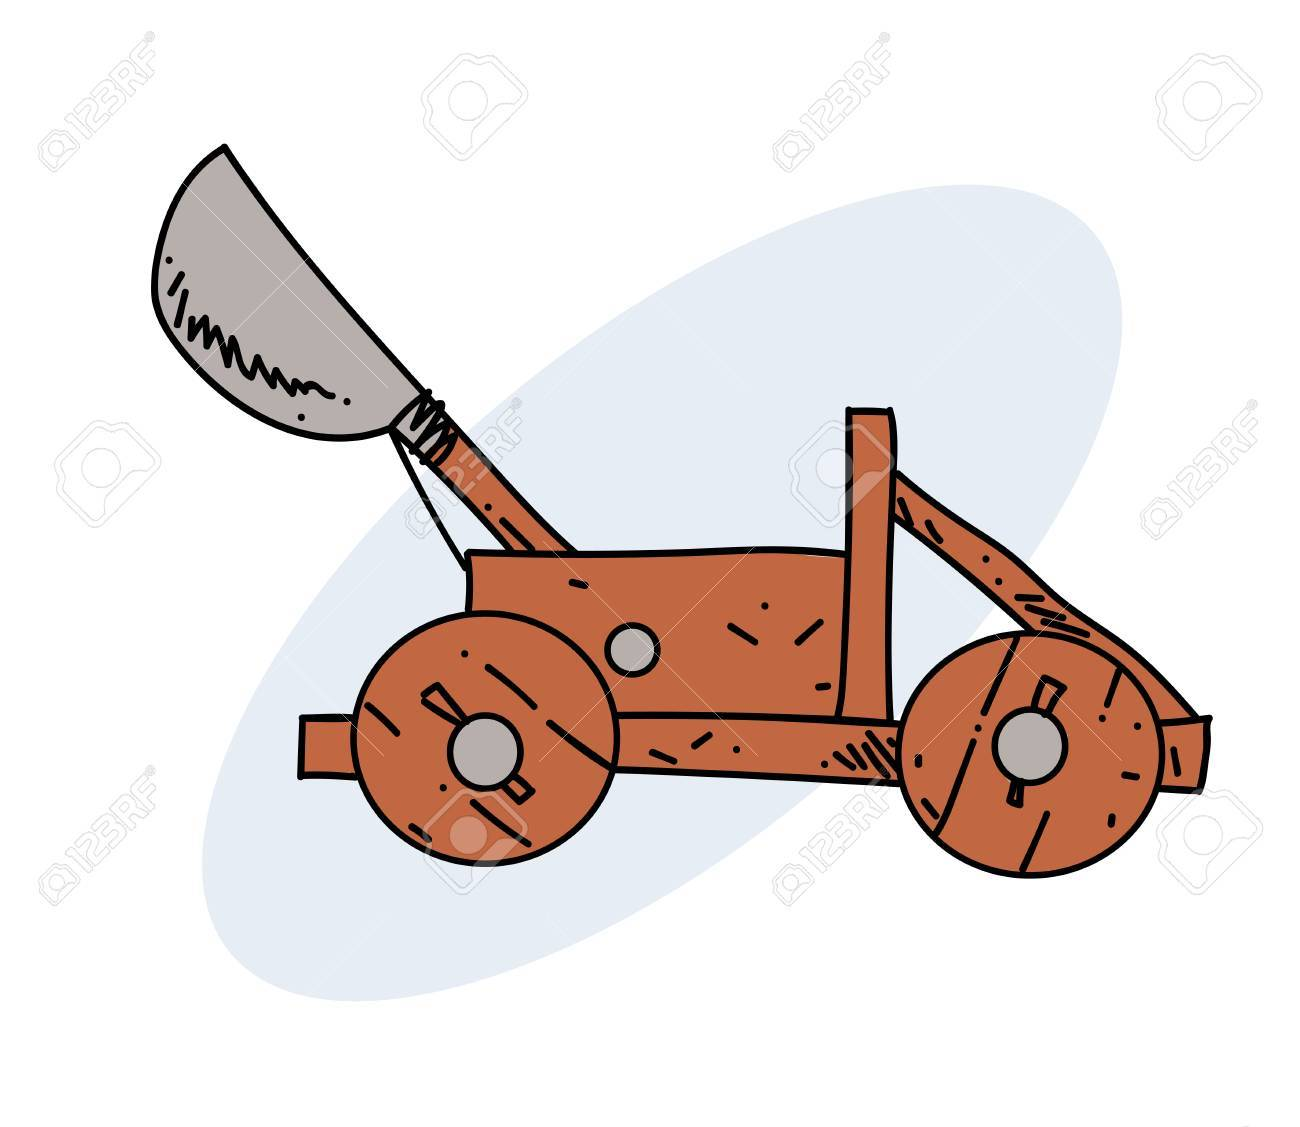 Catapult Clipart | Free download best Catapult Clipart on ClipArtMag.com jpg royalty free